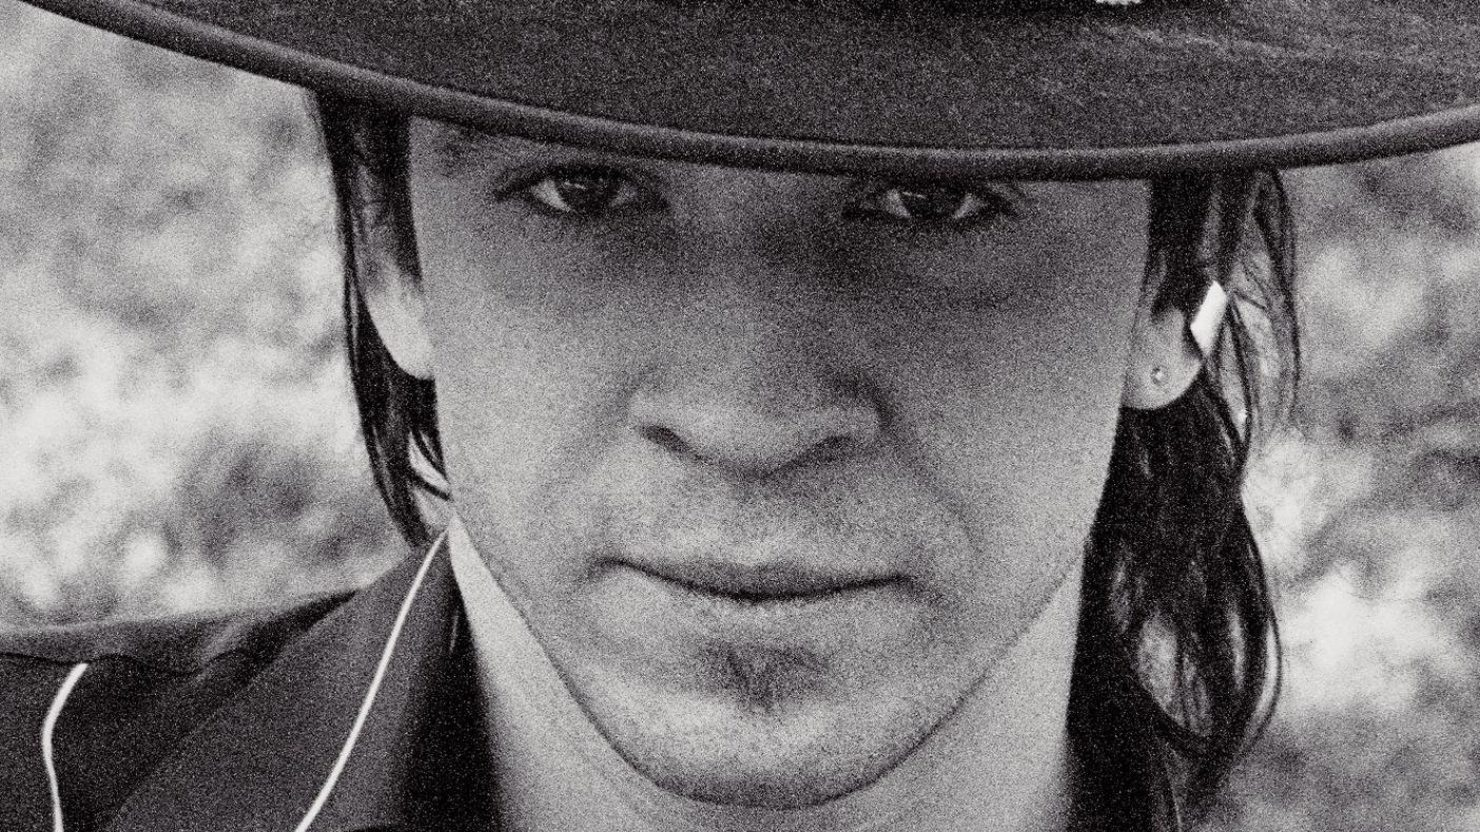 stevie ray vaughan eric clapton helicopter with Remembering Stevie Ray Vaughan Performing Lenny Live on Jimmie Vaughan besides Stevie Ray Vaughan Plimmyra Tou Texas as well Saturday Morning Flashback 1990 Playlist 3 besides Stevie Ray Vaughan likewise How To Play Guitar Like Stevie Ray Vaughan.